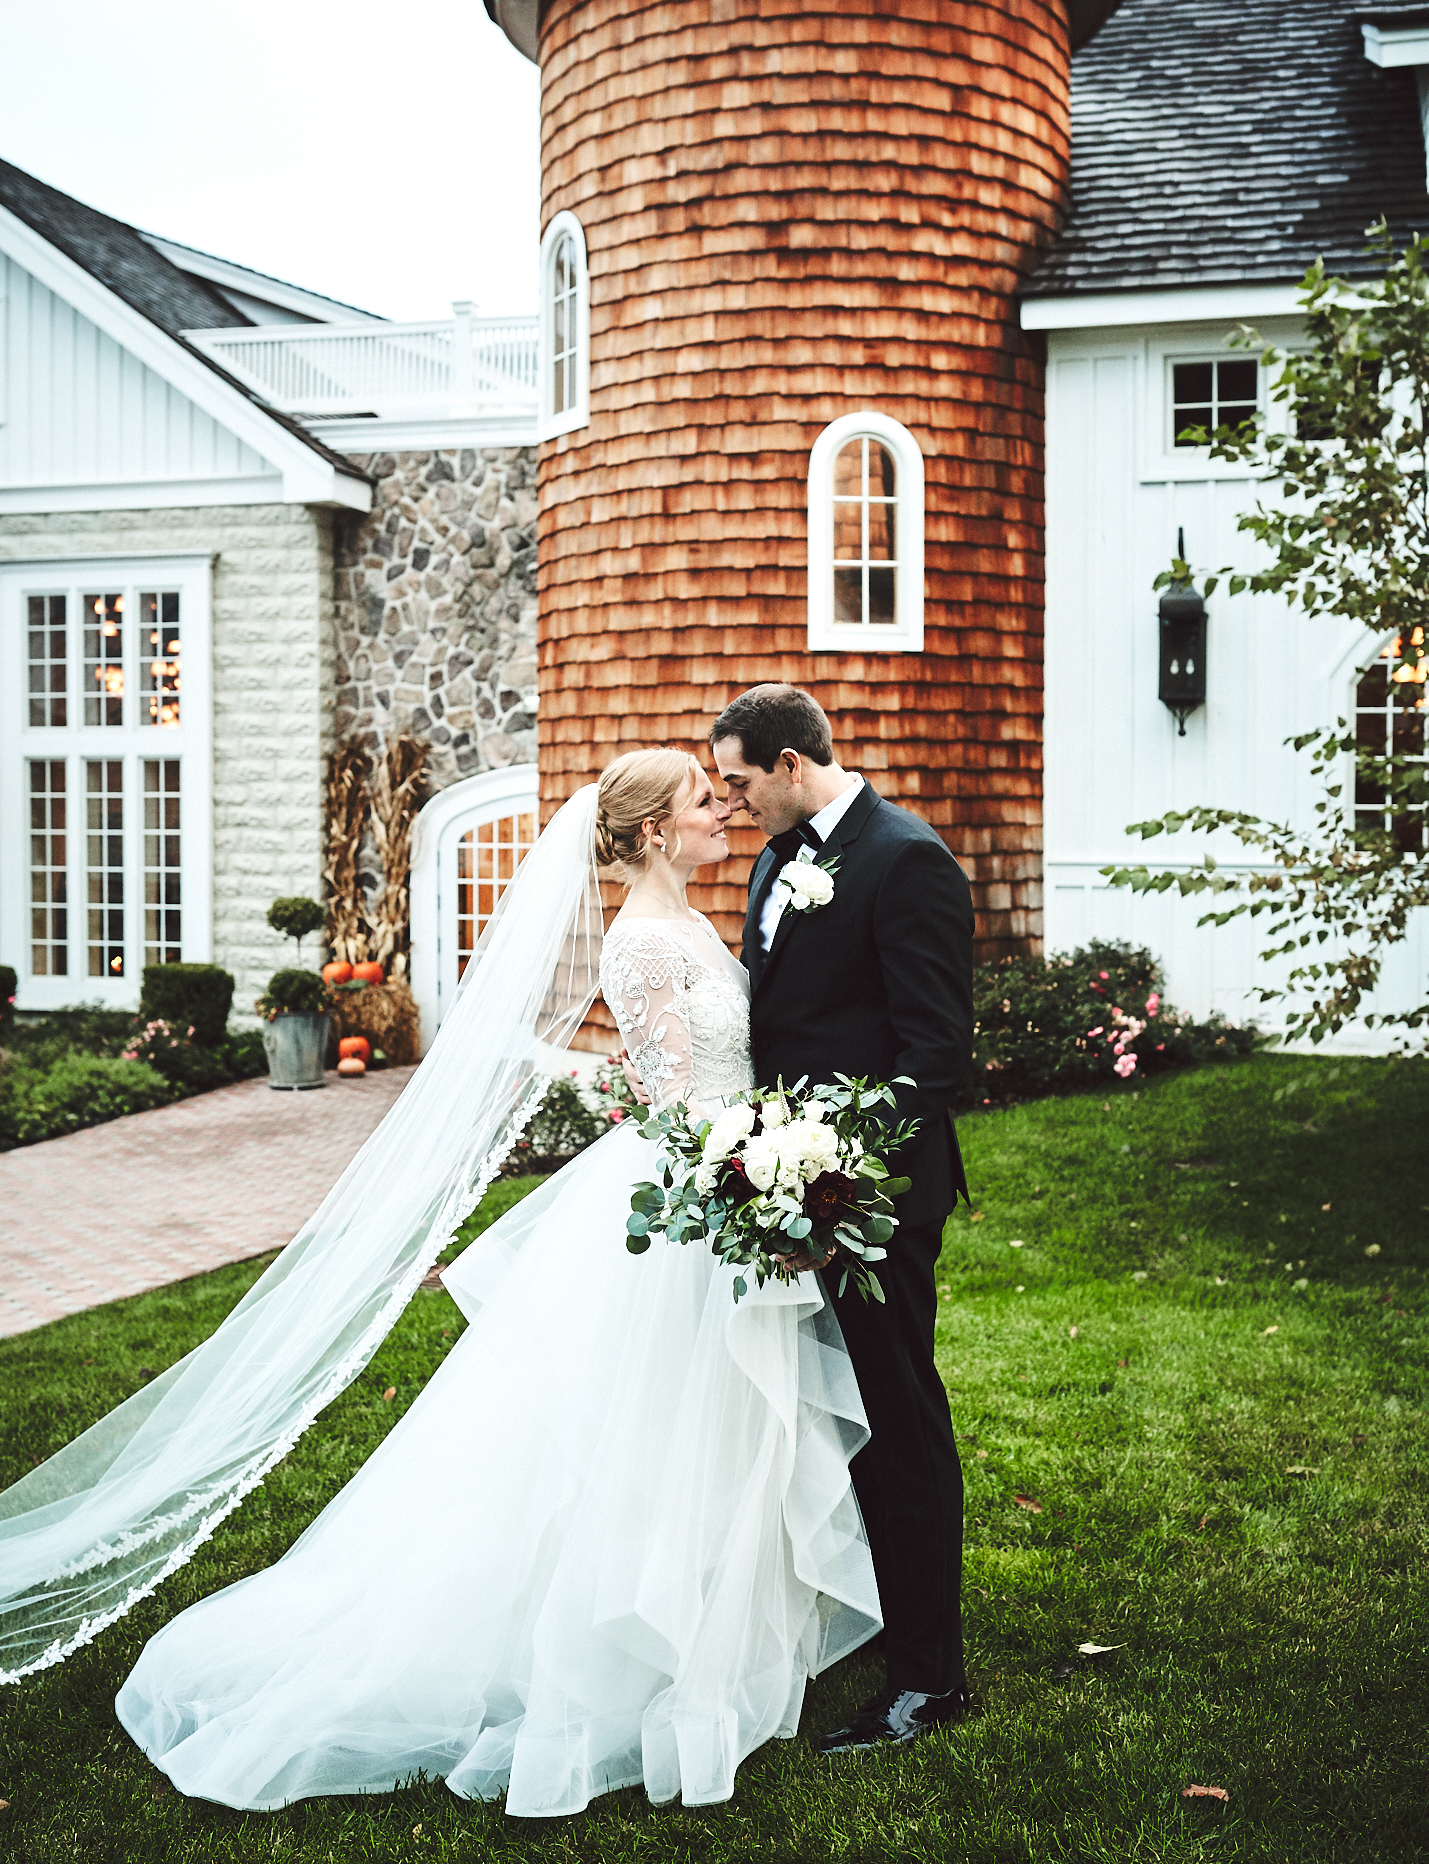 181027_TheRylandInnFallWeddingPhotography_NJWeddingPhotographer_By_BriJohnsonWeddings_0119.jpg